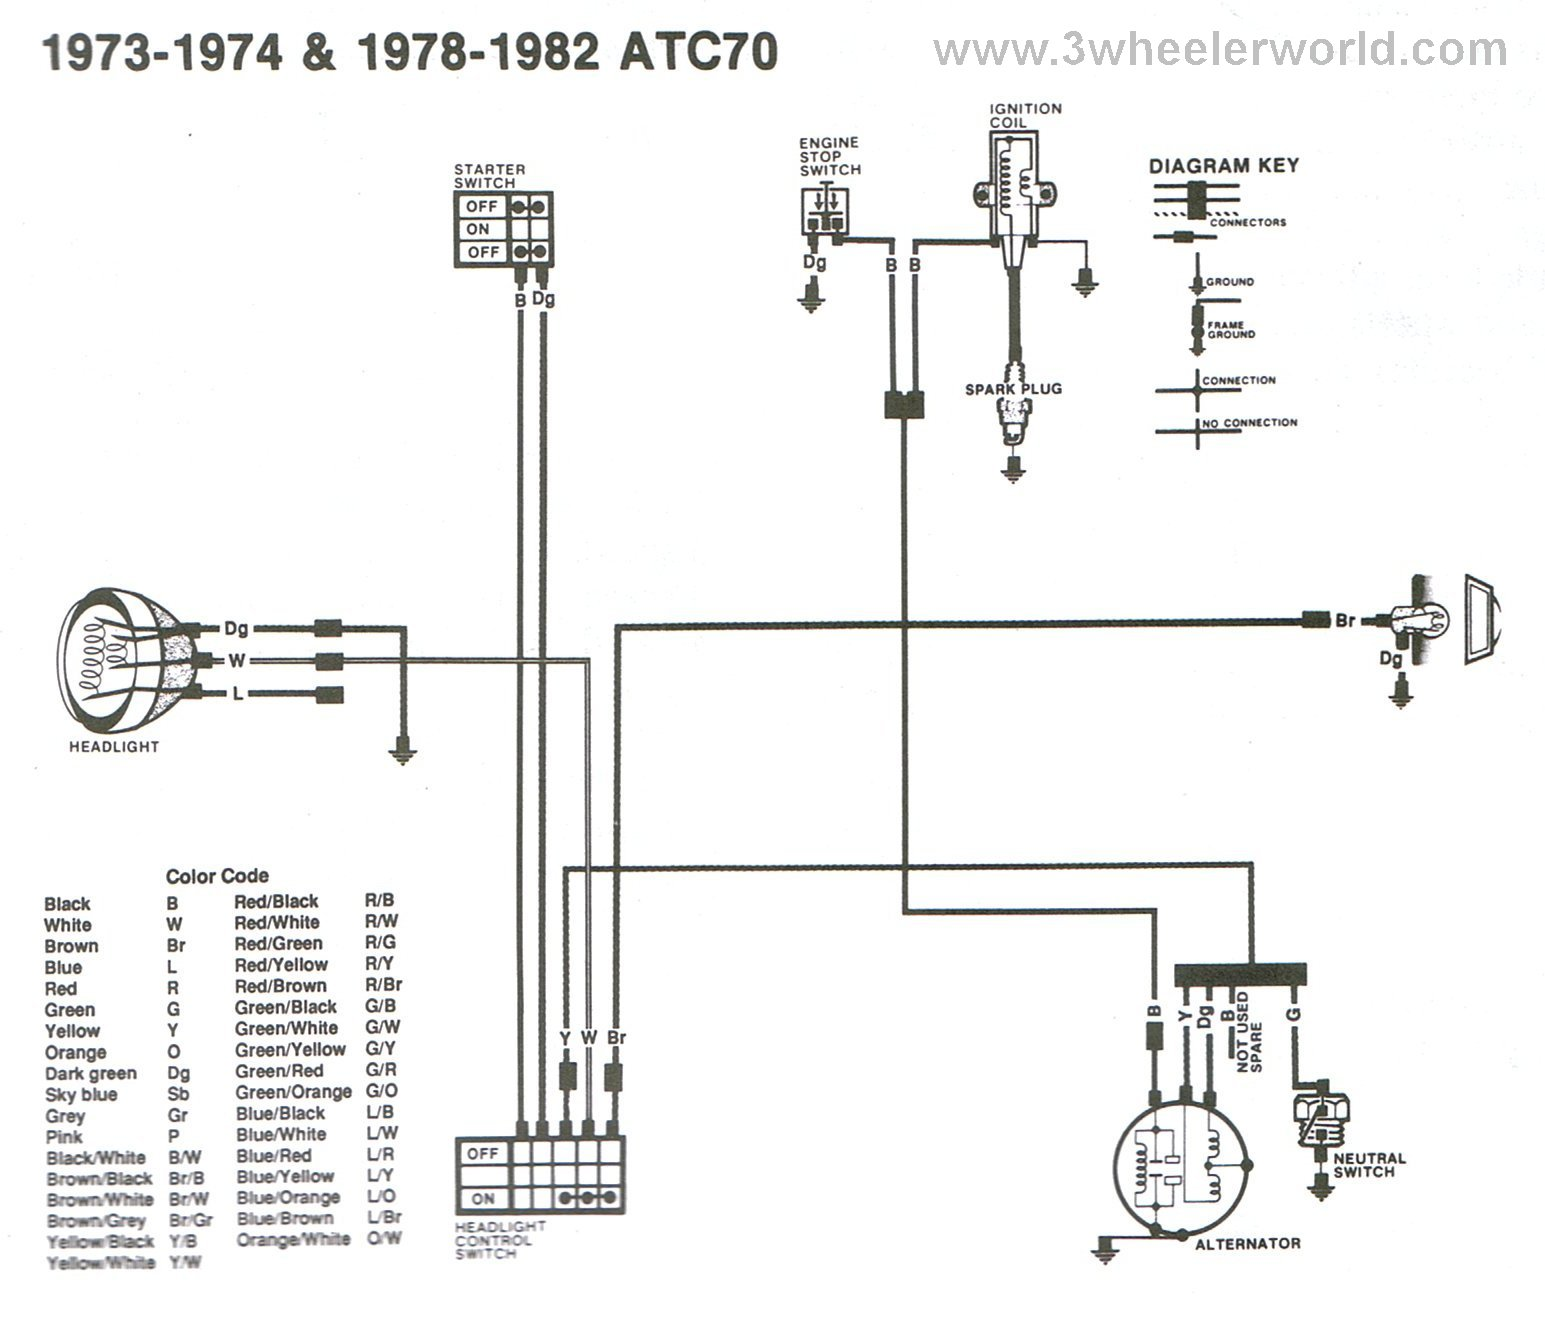 atc 200x wiring diagram 9 7 fearless wonder de \u202281 honda 200 atc wiring diagram free download wiring diagram best rh c12 aluminiumsolutions co 1986 honda 200x wiring diagram 1984 honda 200x wiring diagram